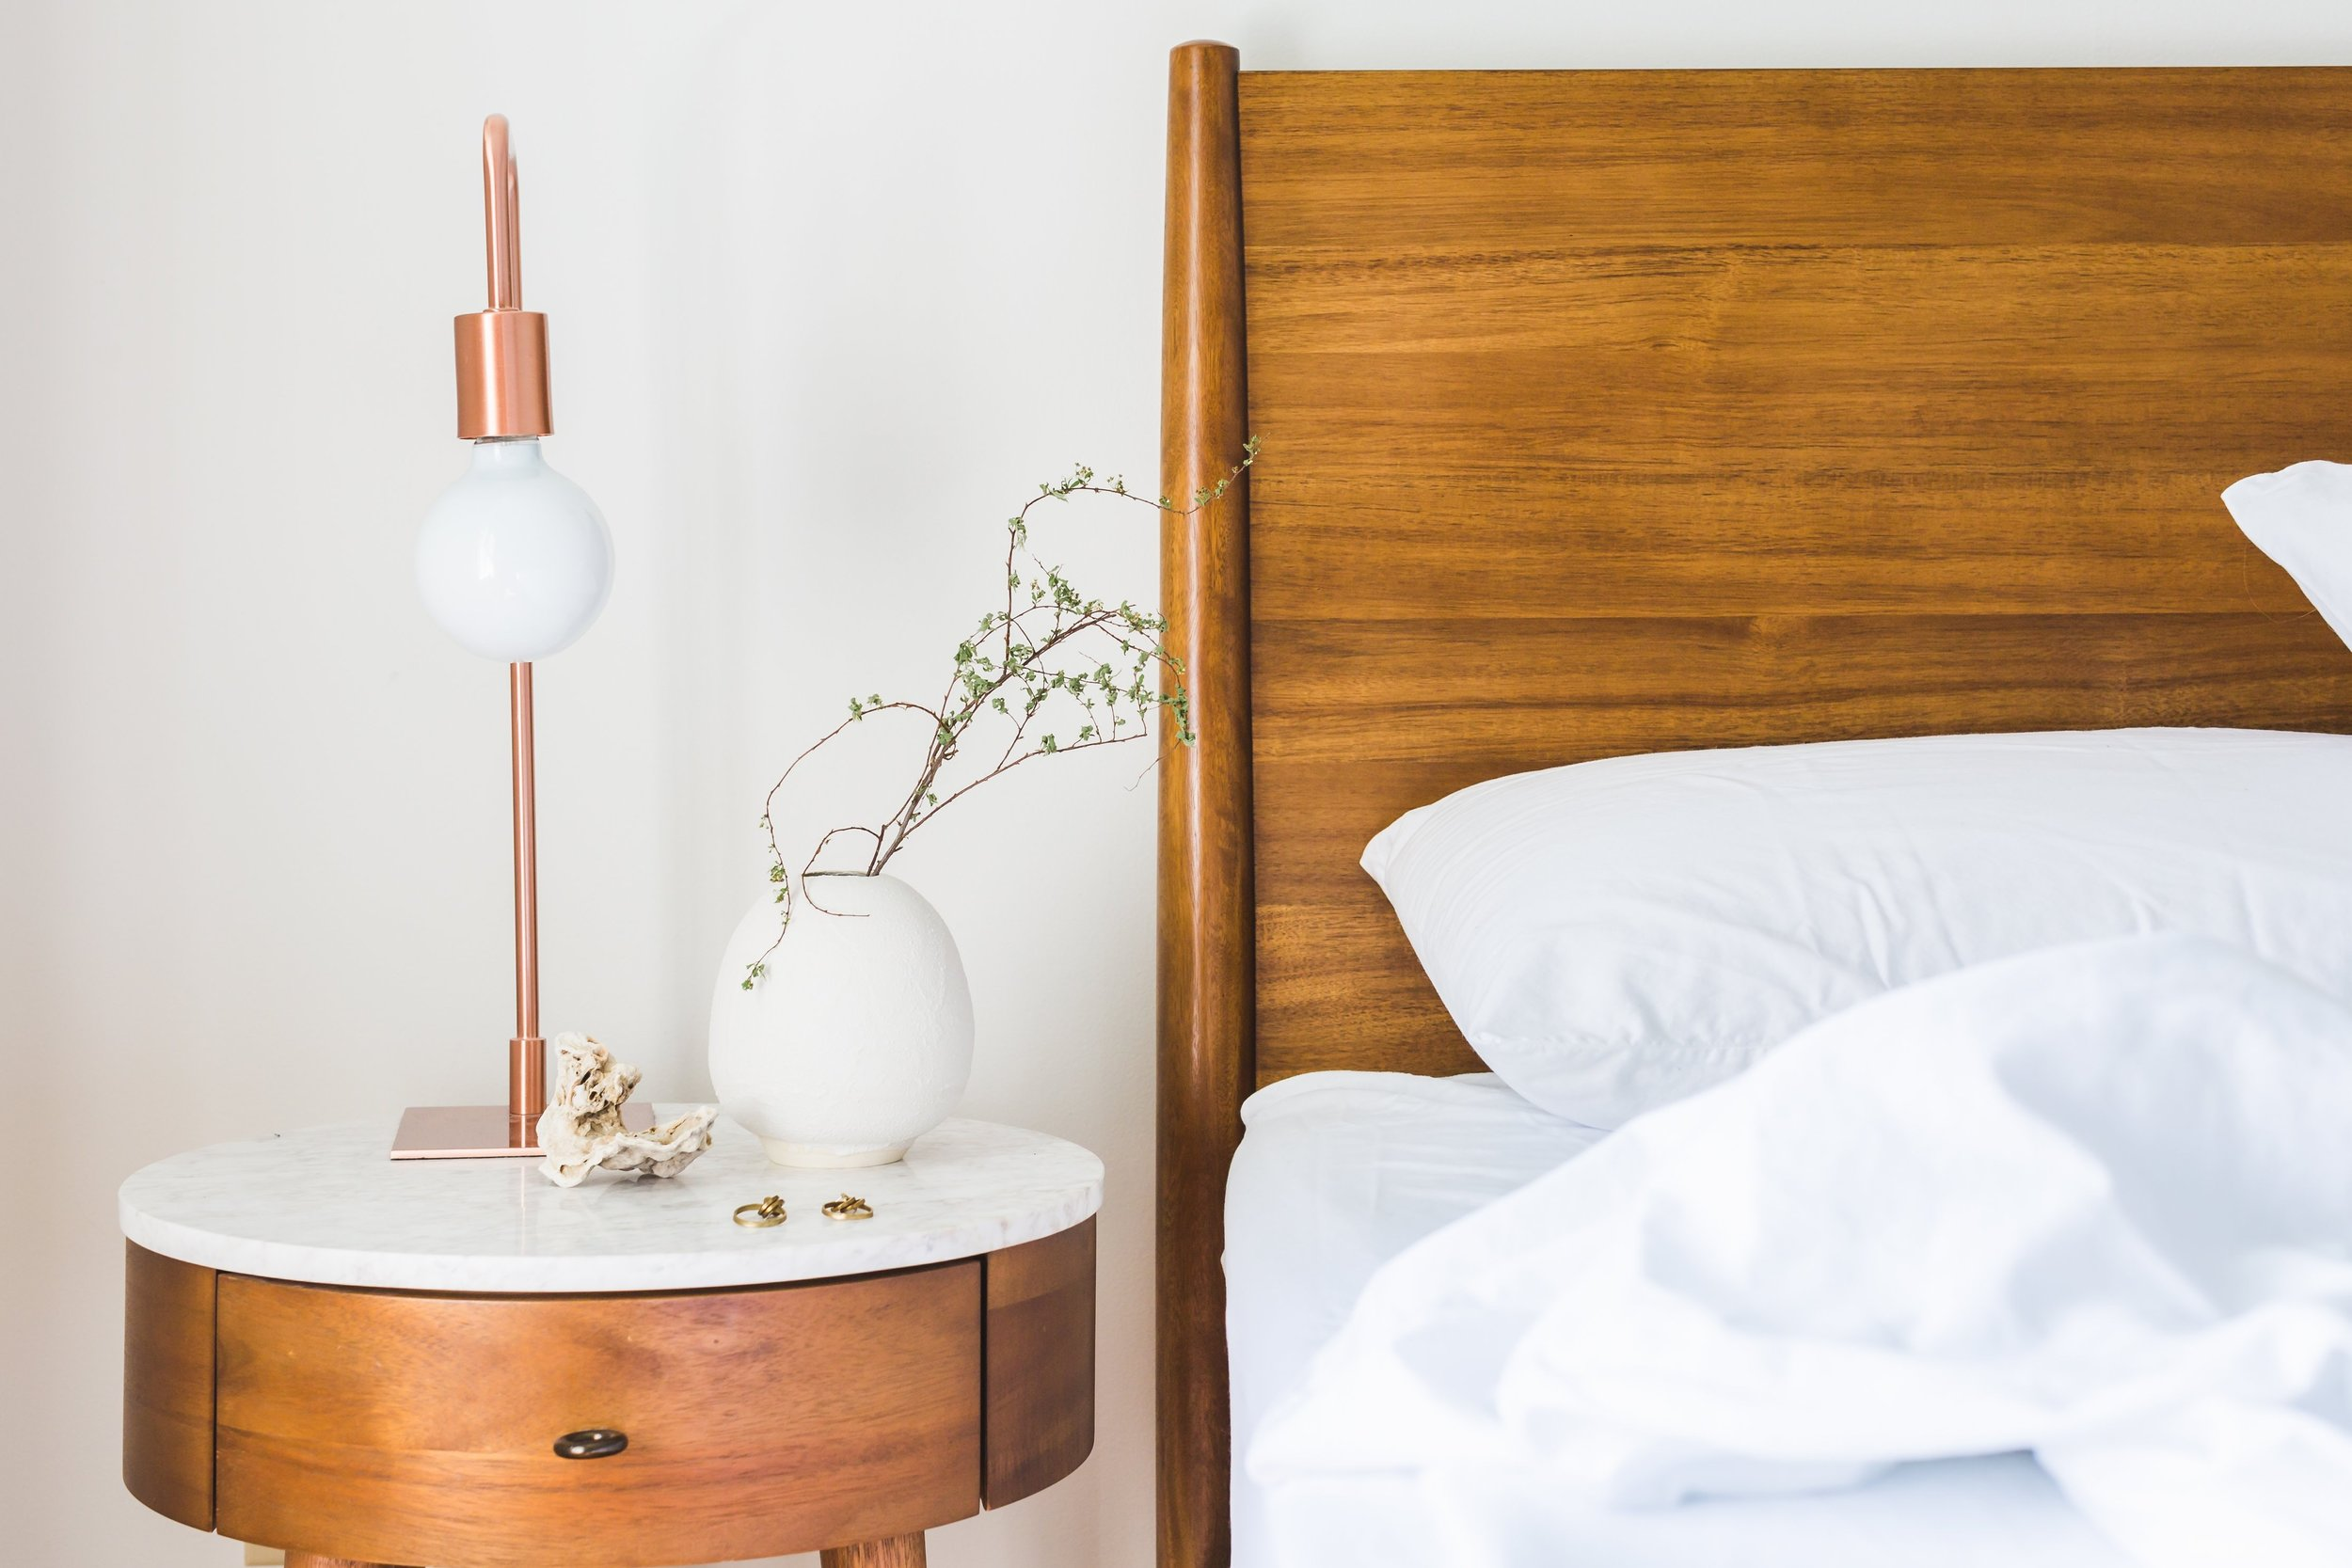 design-blogging-in-2019-what-to-blog-about-ochre-and-beige.jpg